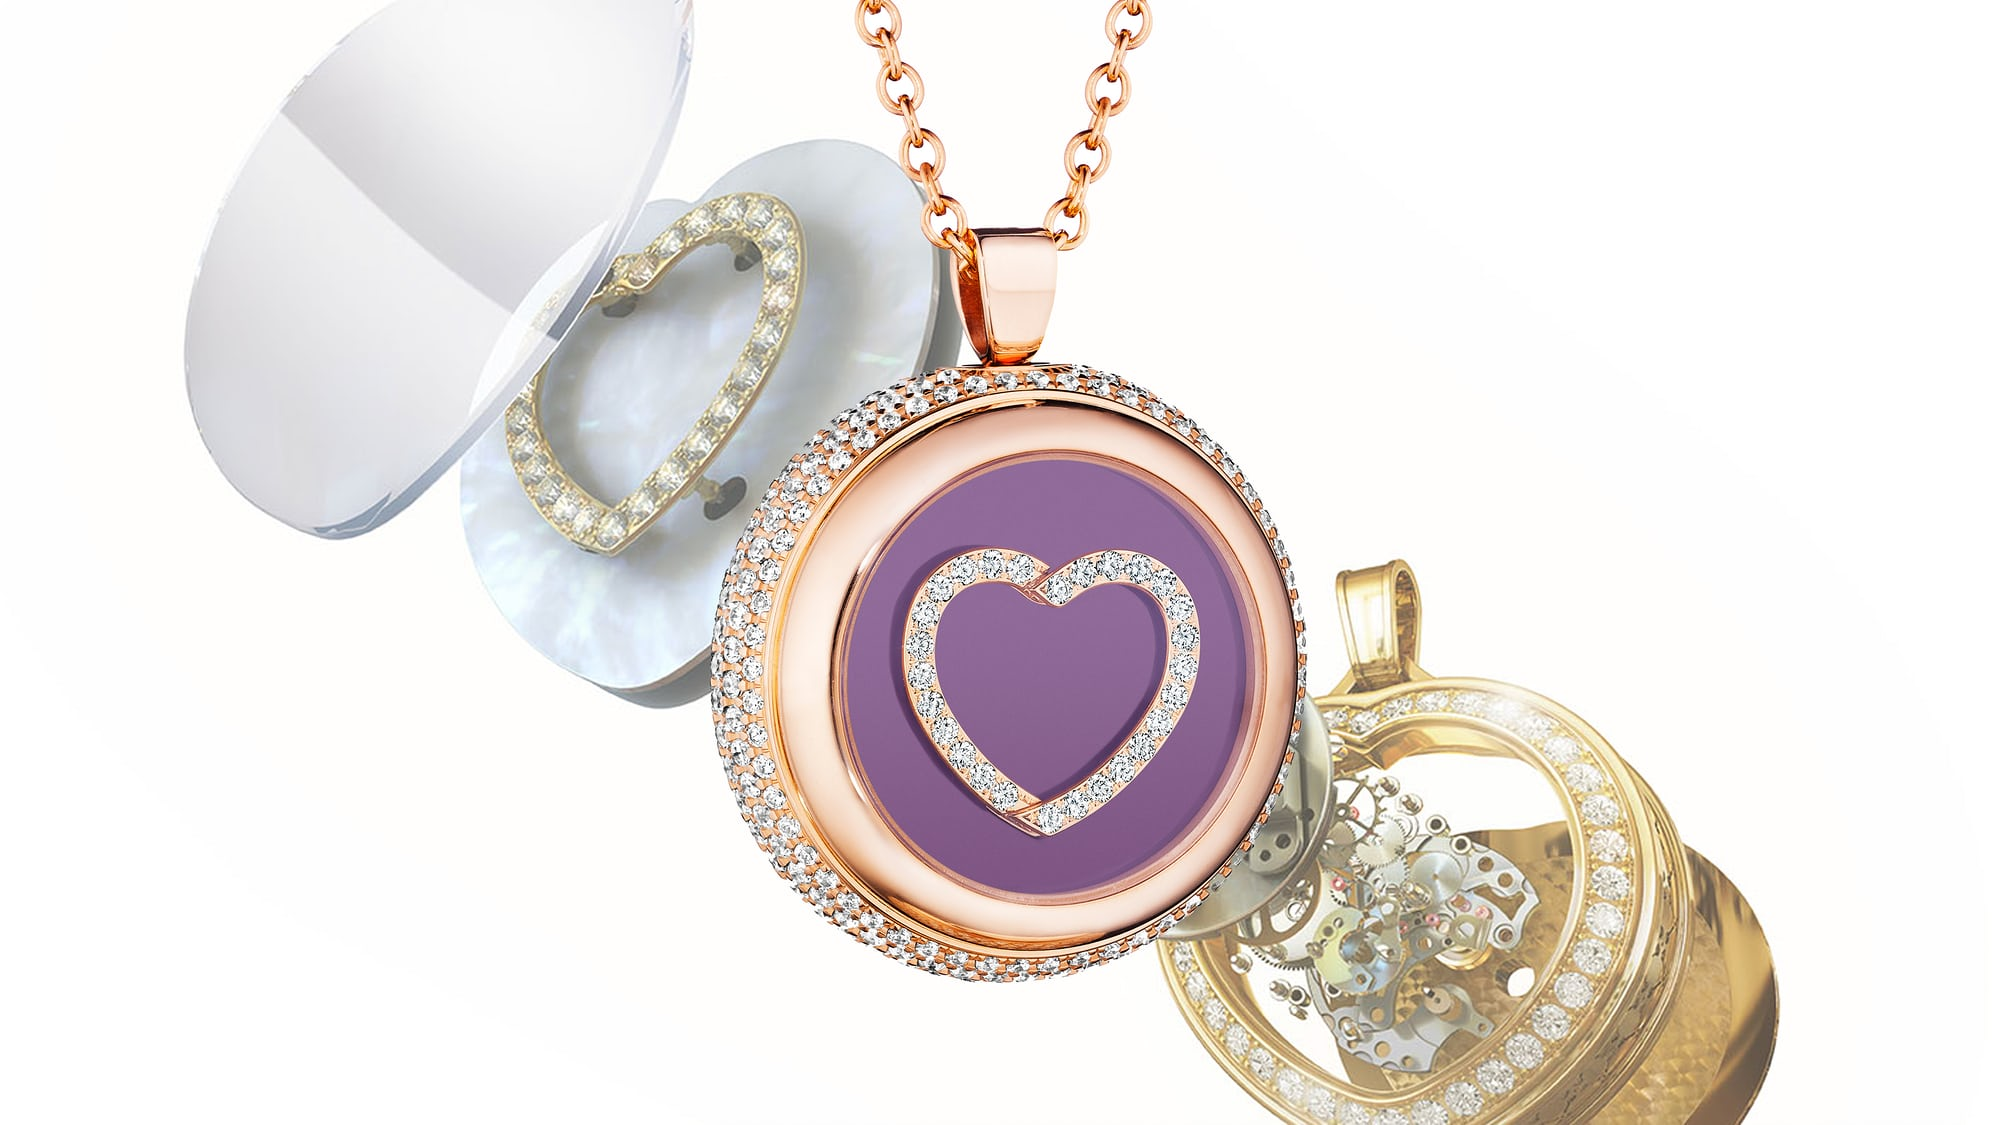 """Paul forrest co hero.jpg?ixlib=rails 1.1 Introducing: The """"Heart's Passion"""" Beating Mechanical Heart Pendant From Paul Forrest Co. Introducing: The """"Heart's Passion"""" Beating Mechanical Heart Pendant From Paul Forrest Co. paul forrest co hero"""